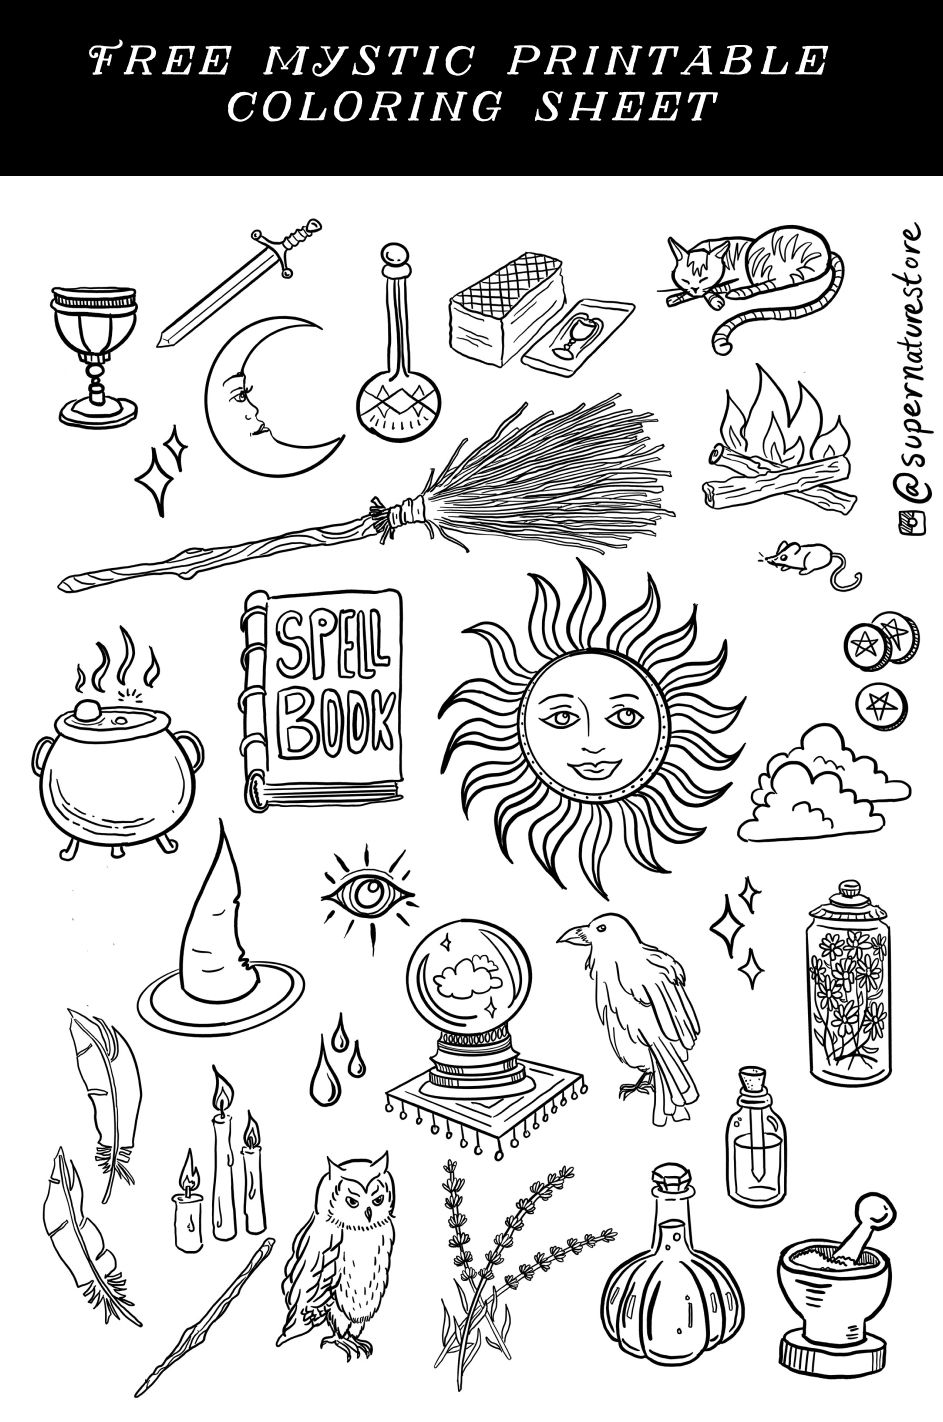 Photo of Mystic Coloring Sheet Page Printable download